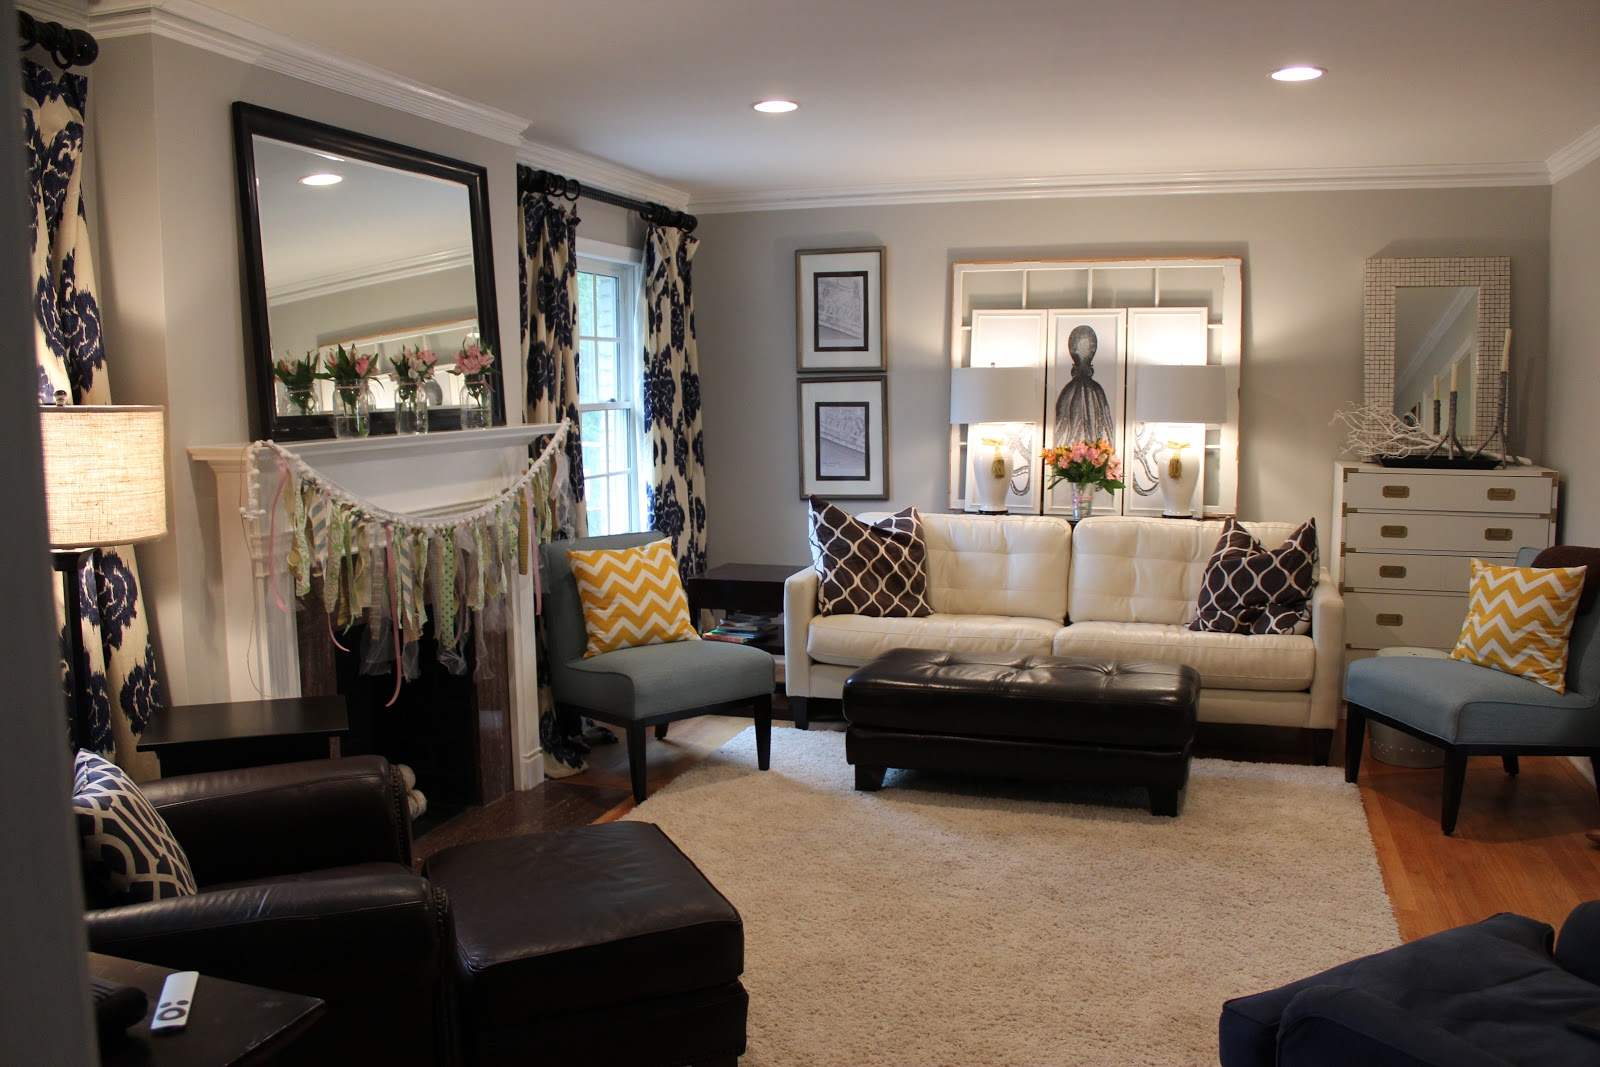 Fifty shades of grey our house paint colors southern - Gray living room walls ...